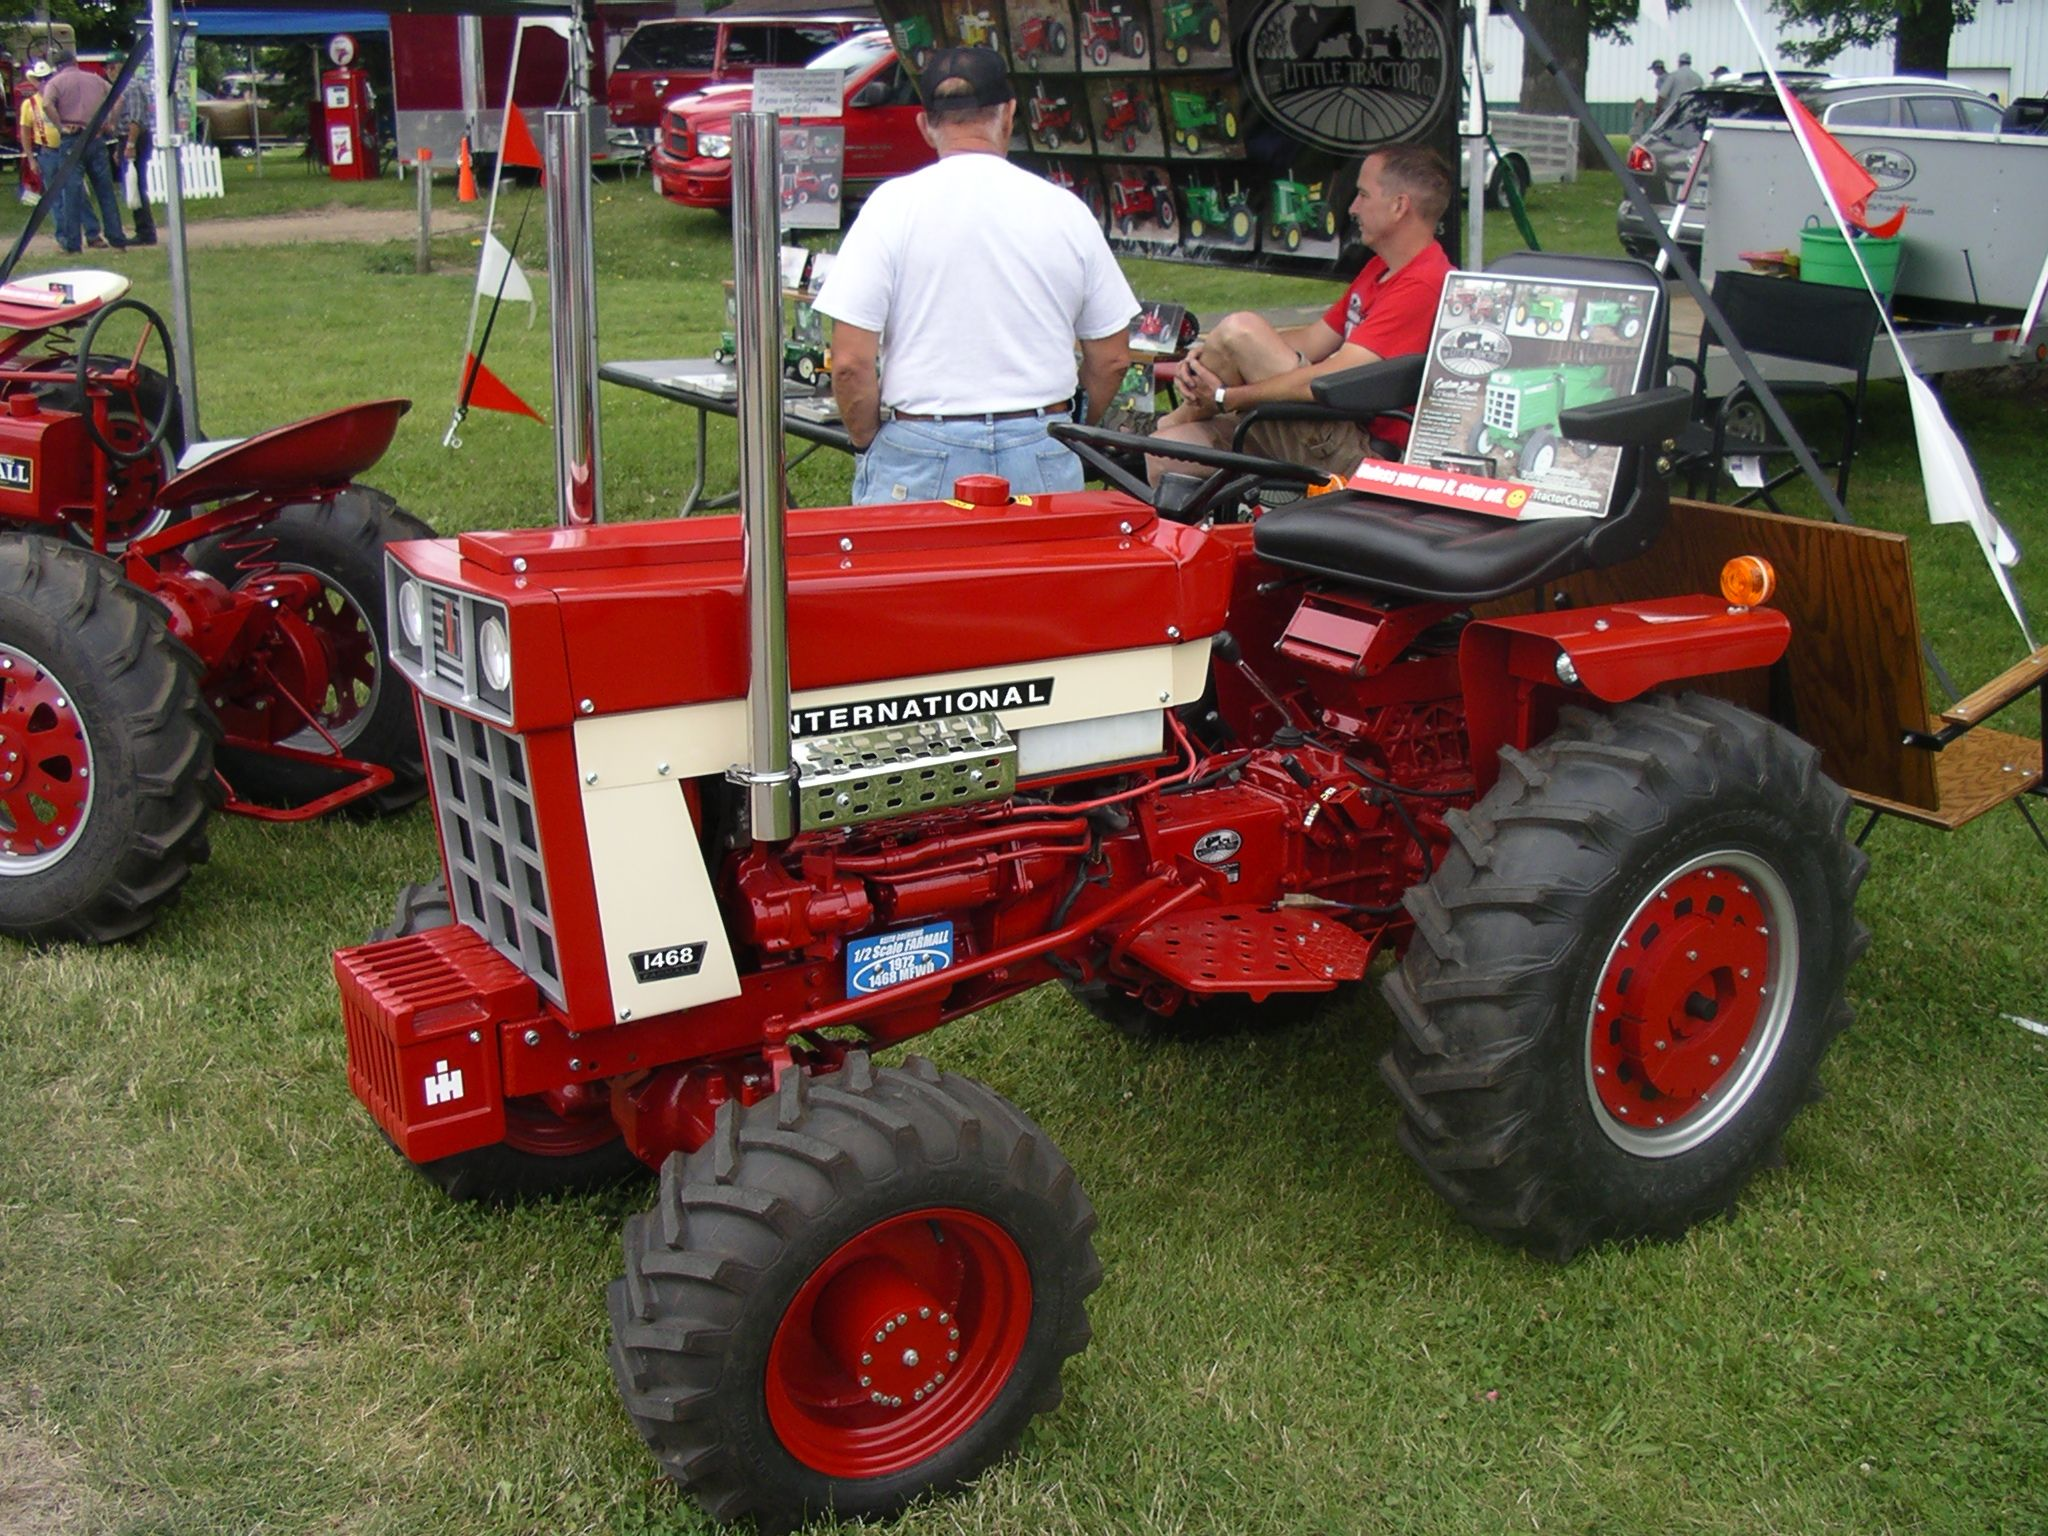 Little Tractor Co Ih 1468 Vintage Tractors Lawn Mower Tractor